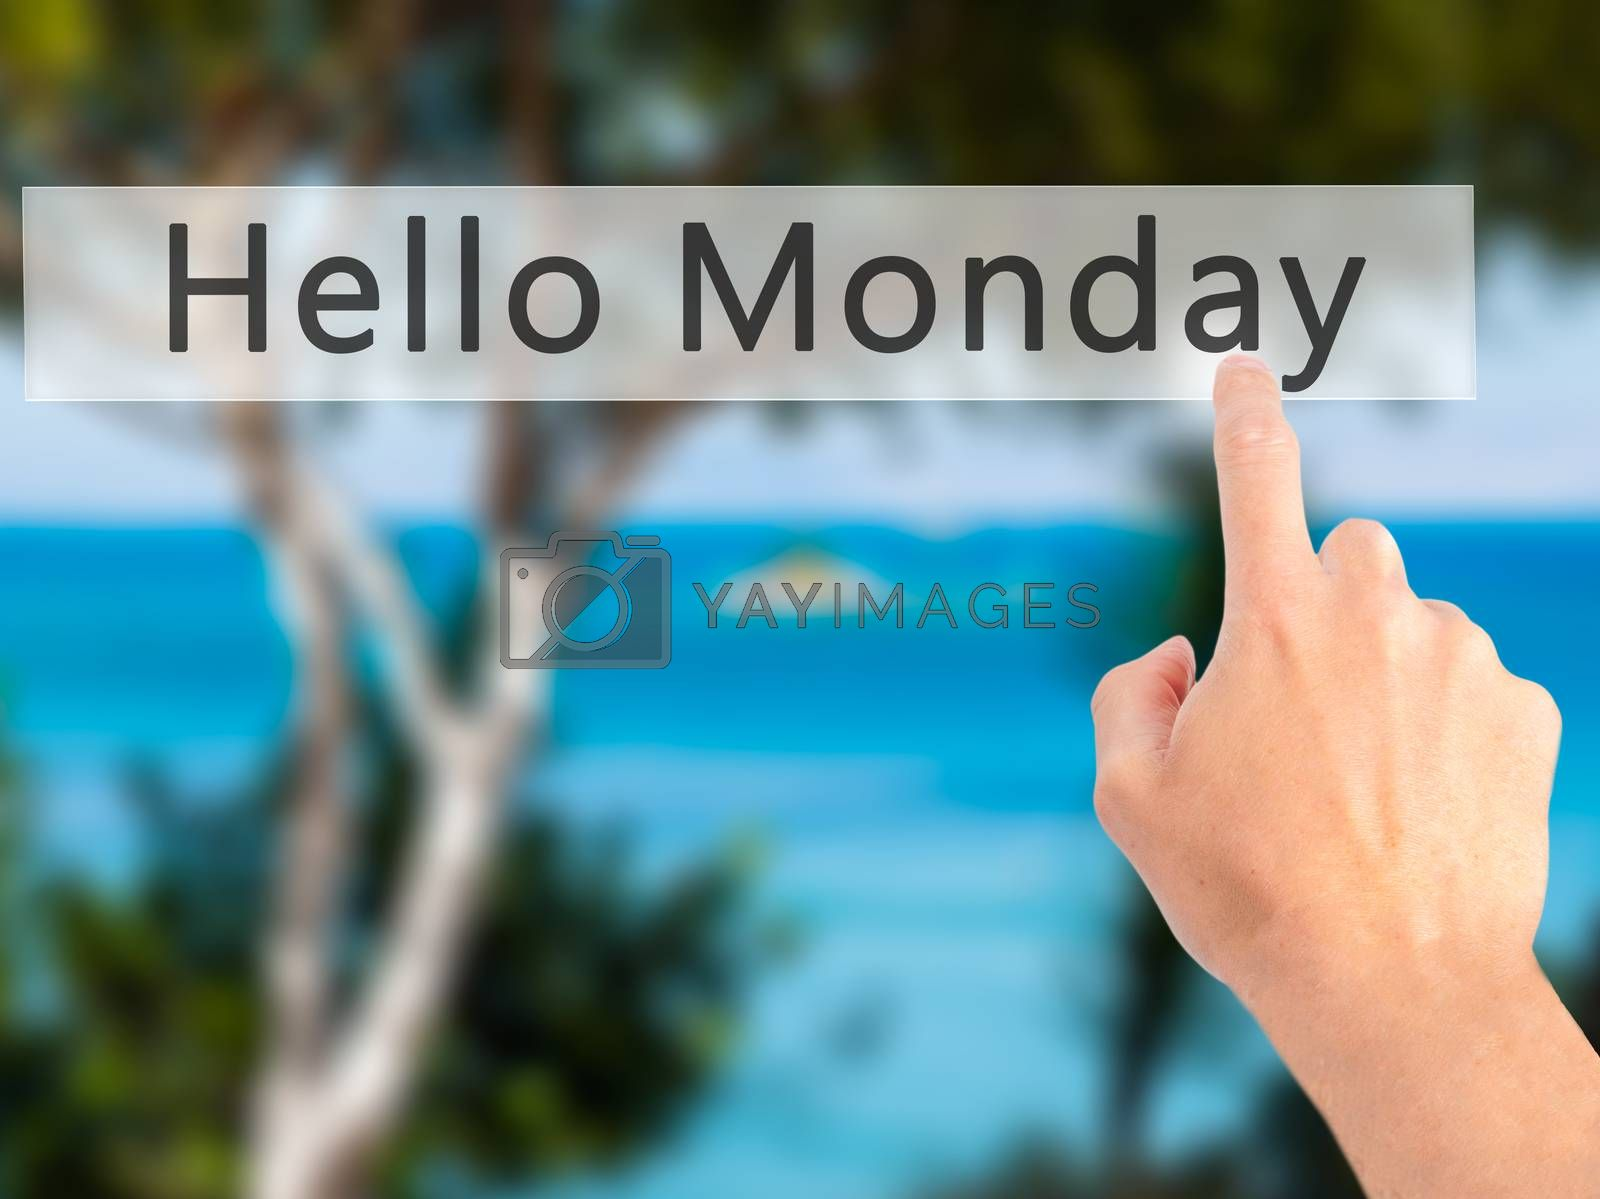 Hello Monday - Hand pressing a button on blurred background conc by netsay.net